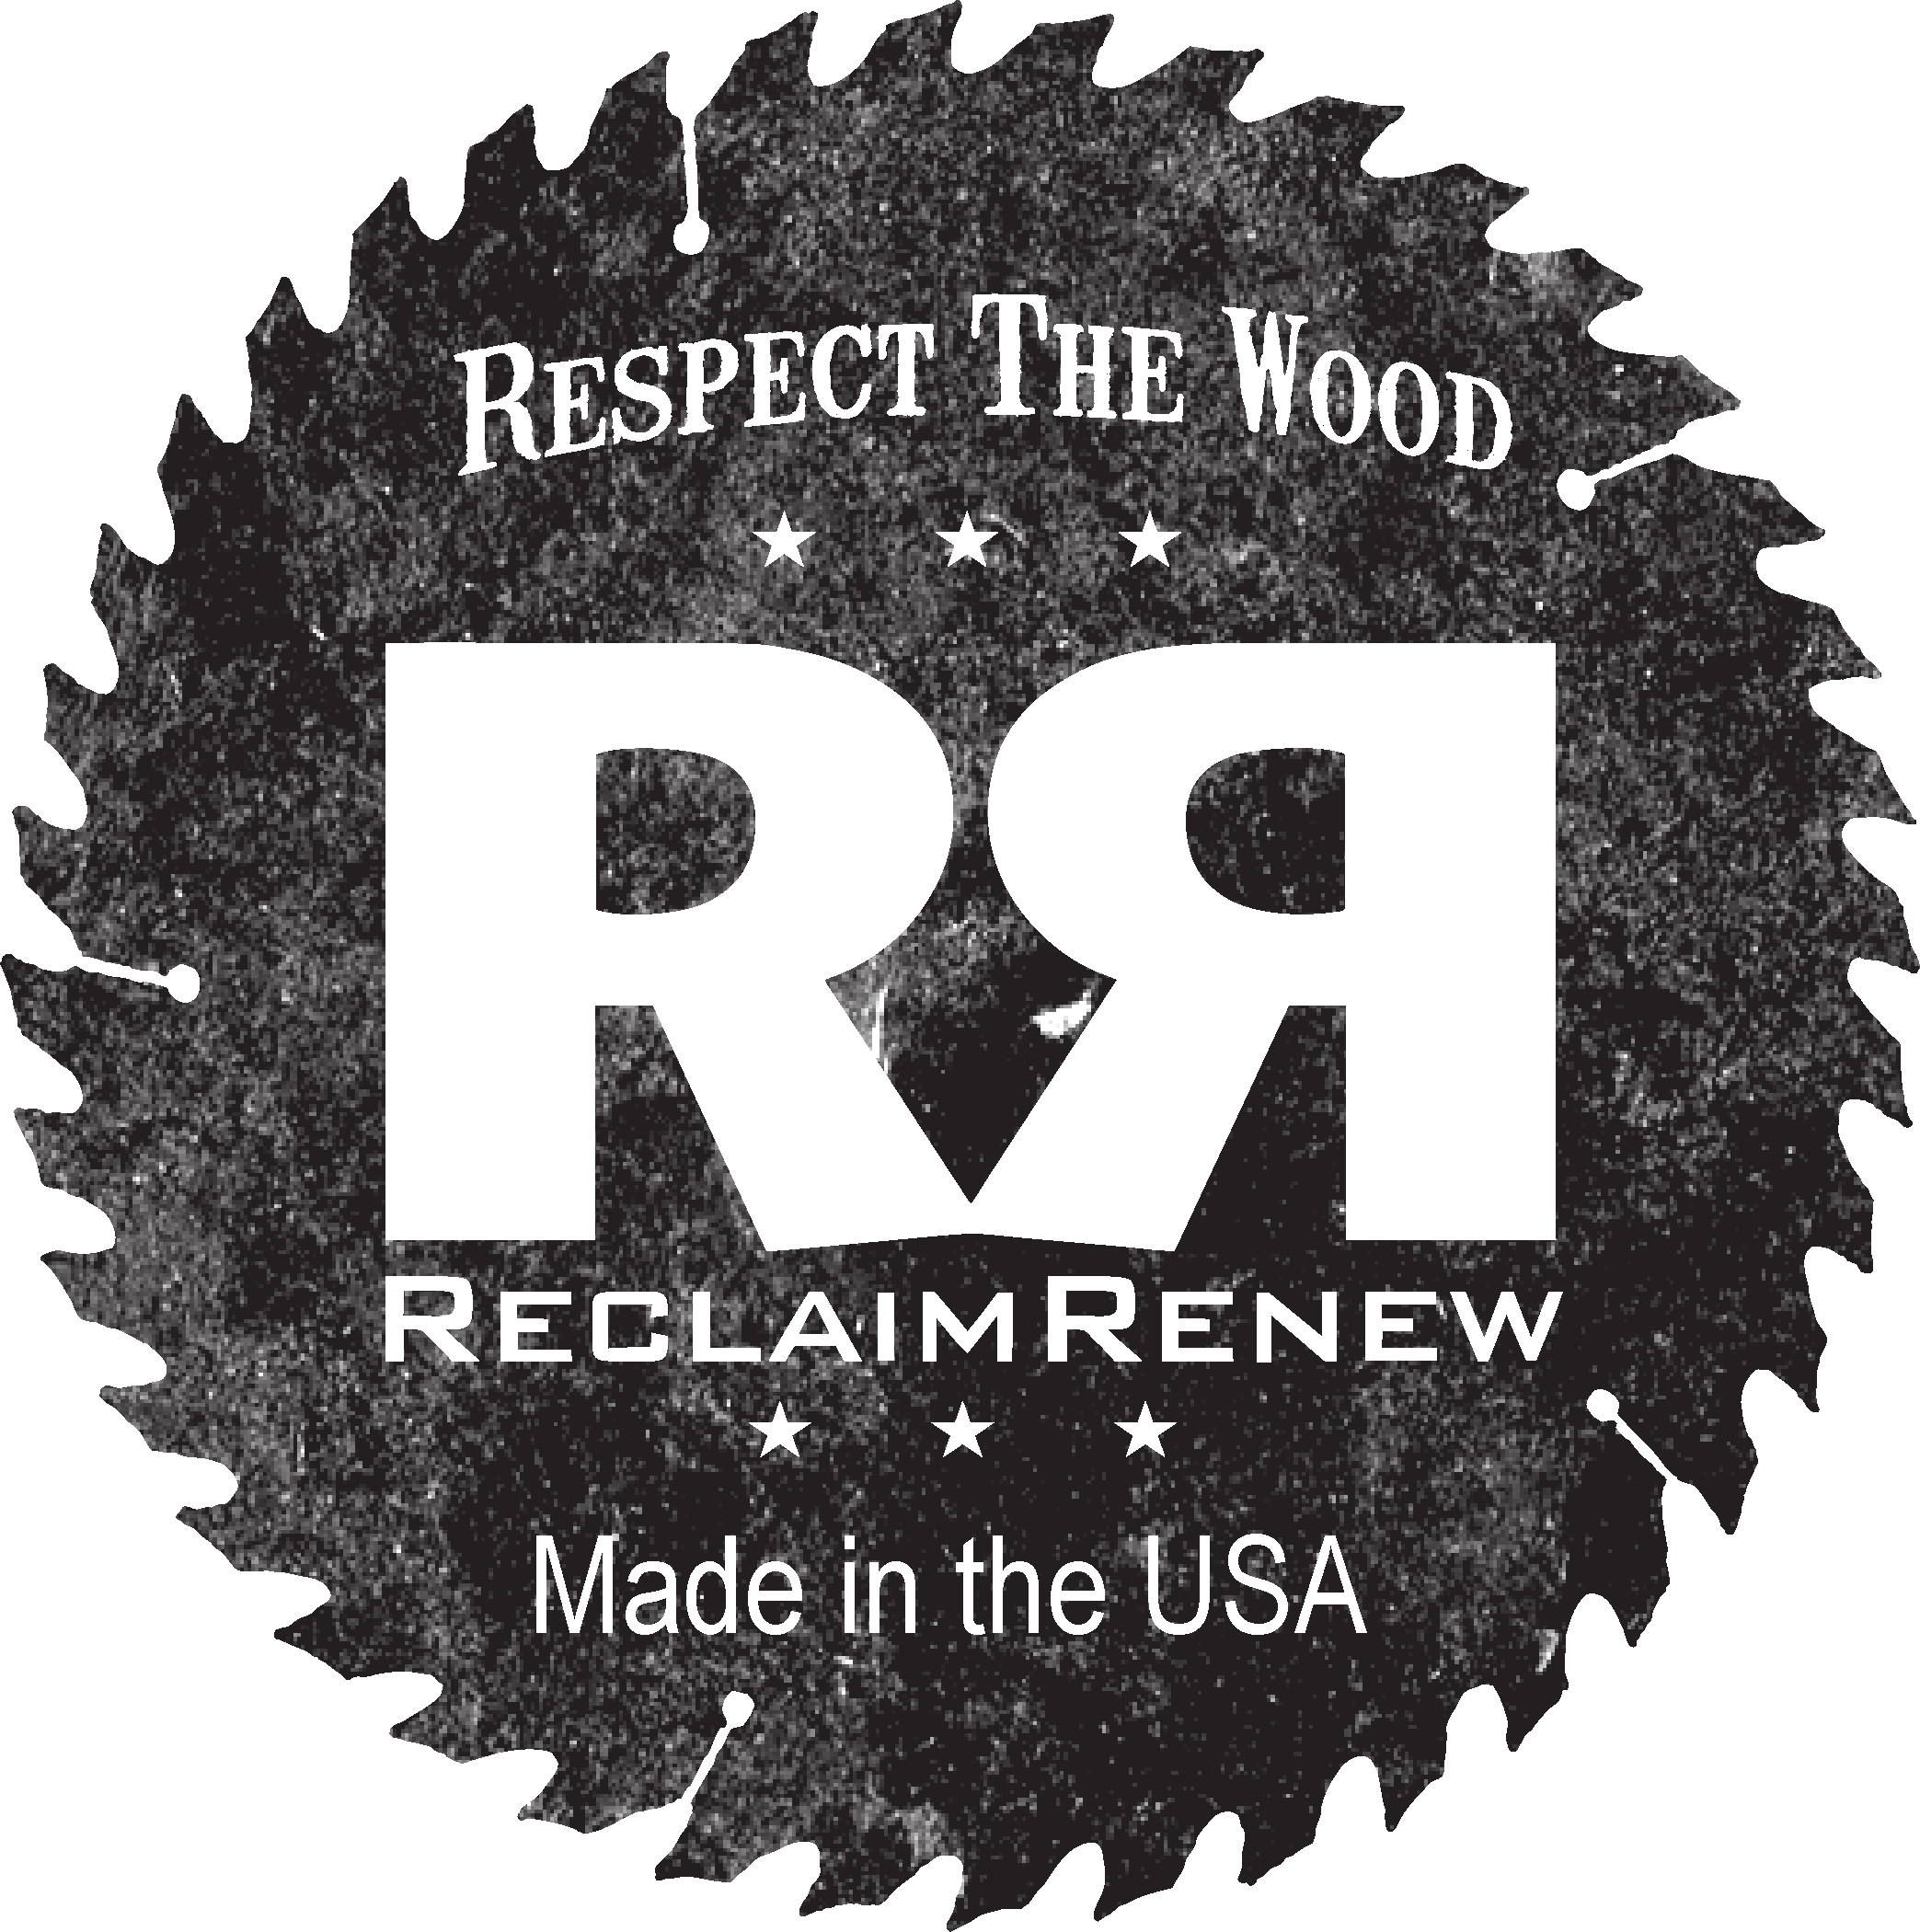 Reclaim Renew Saw Blad